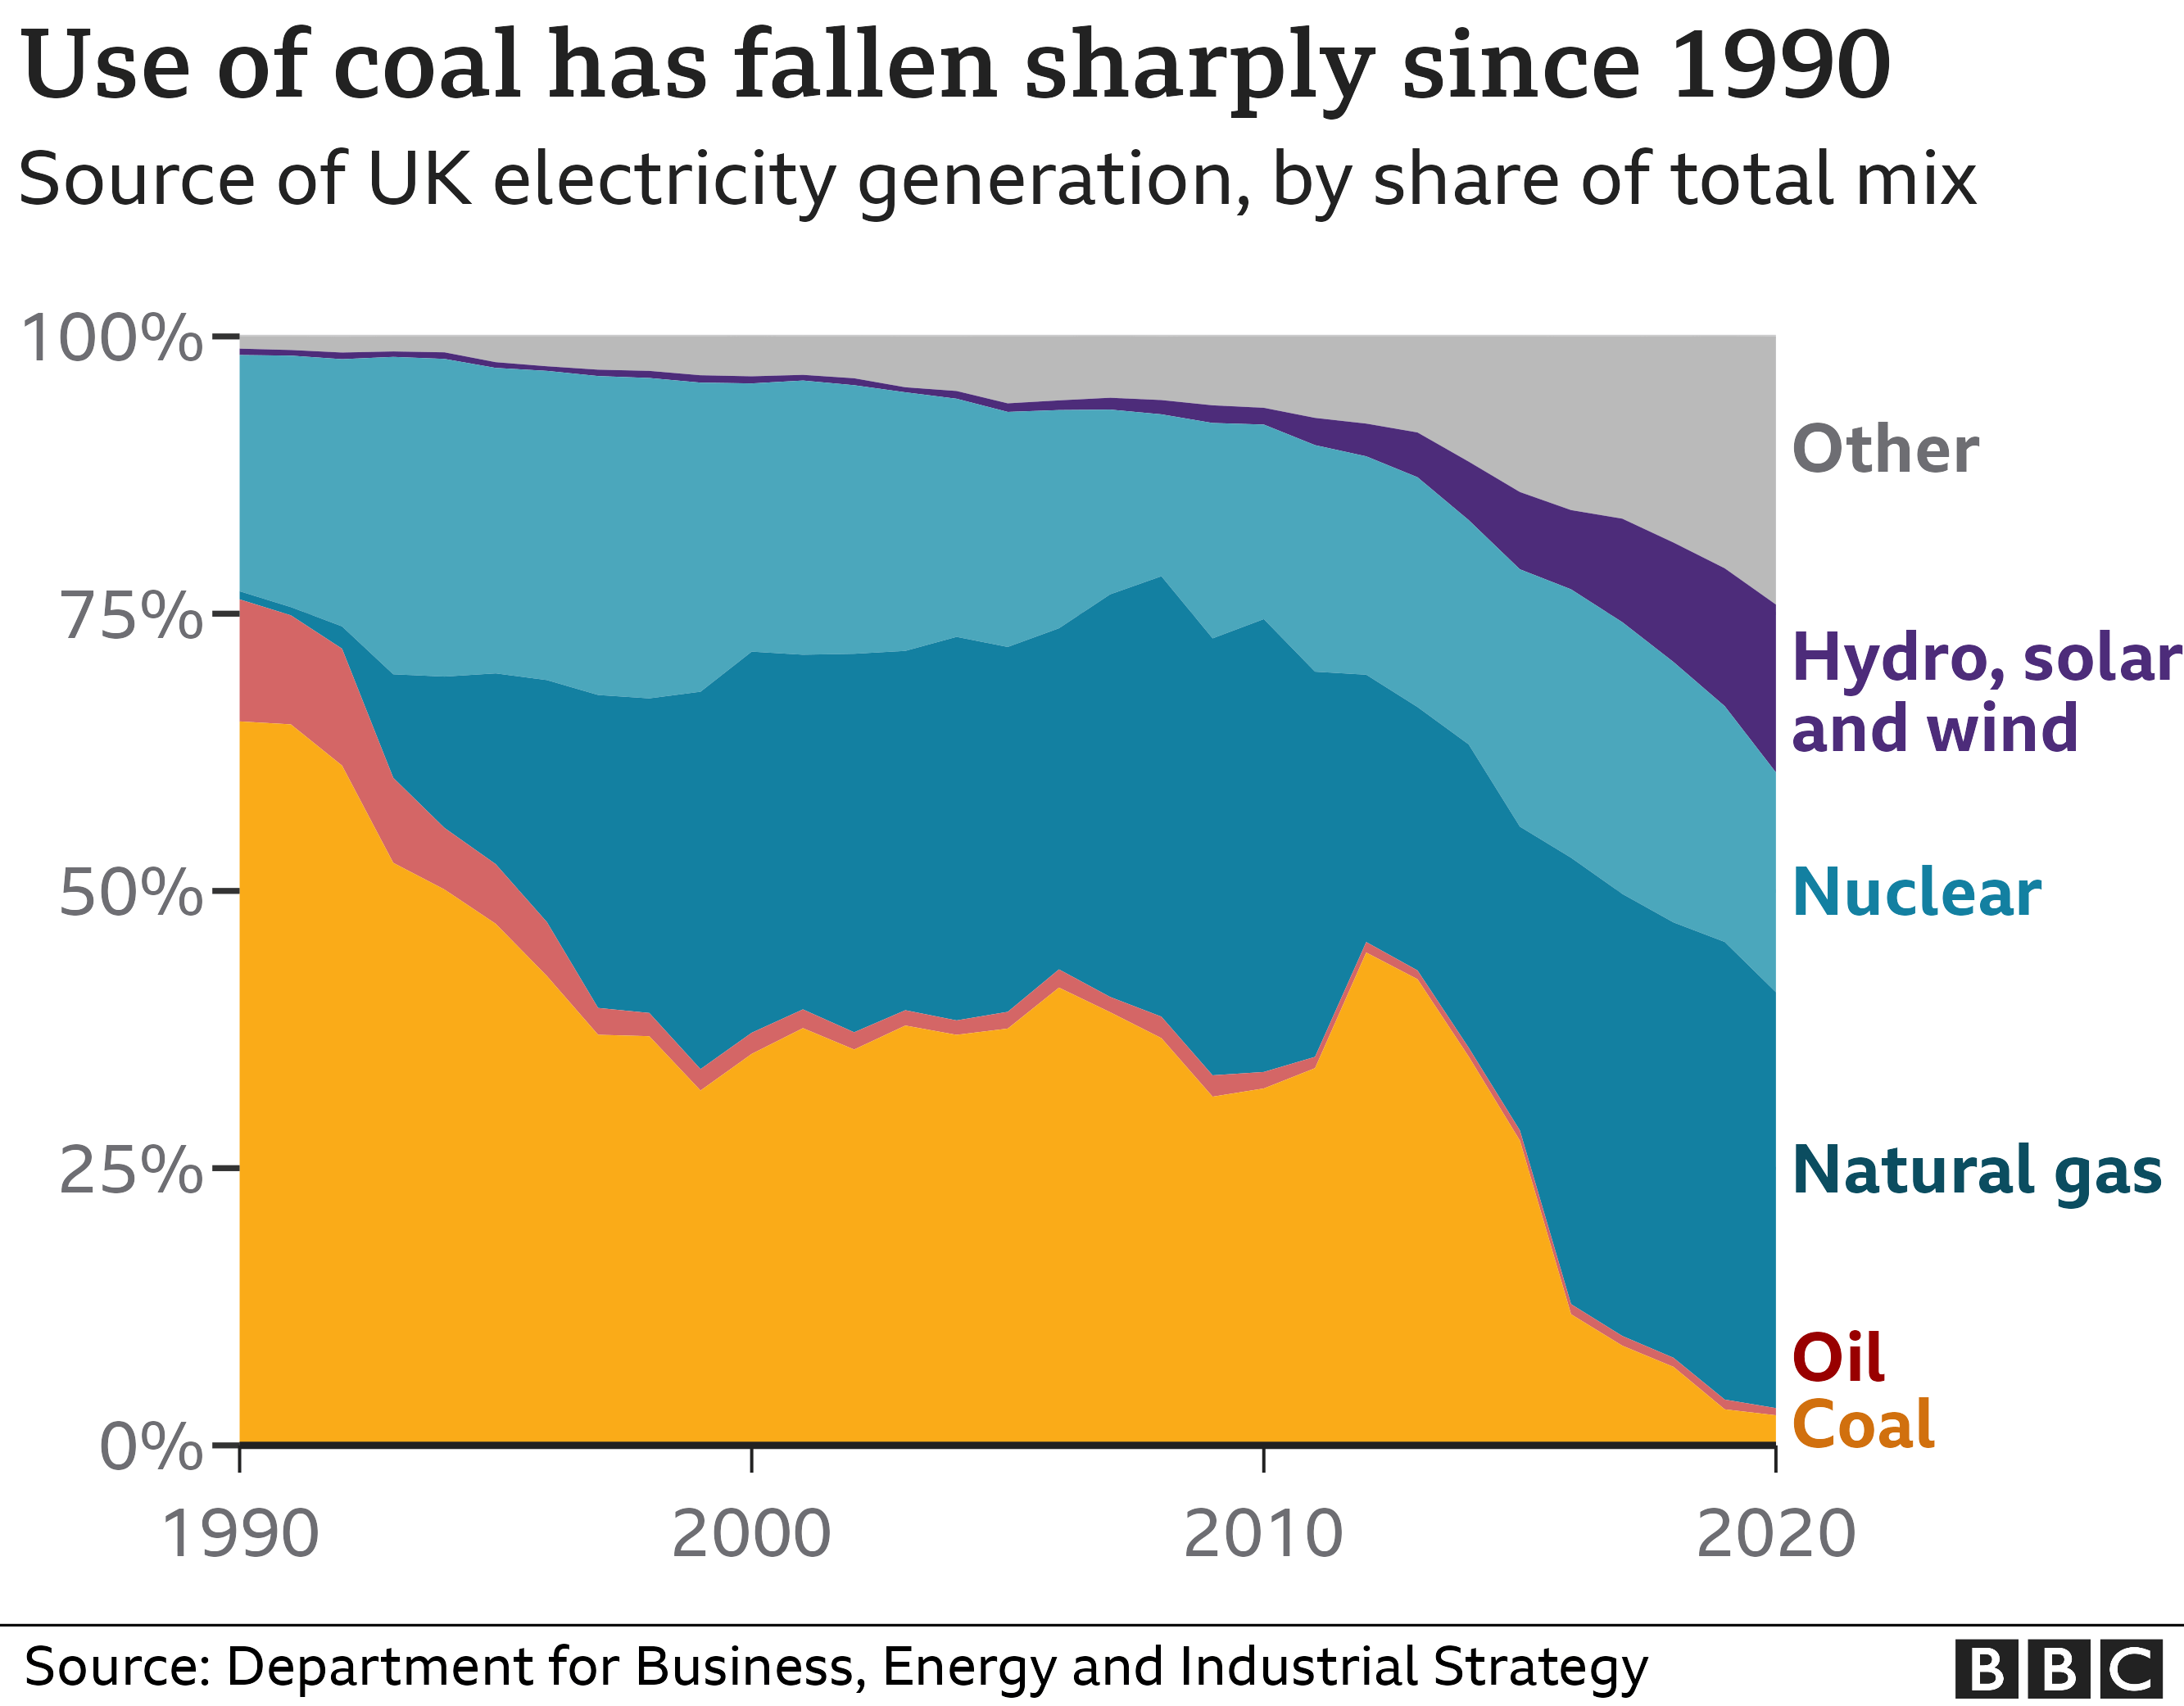 Chart showing source of UK electricity generation since 1990